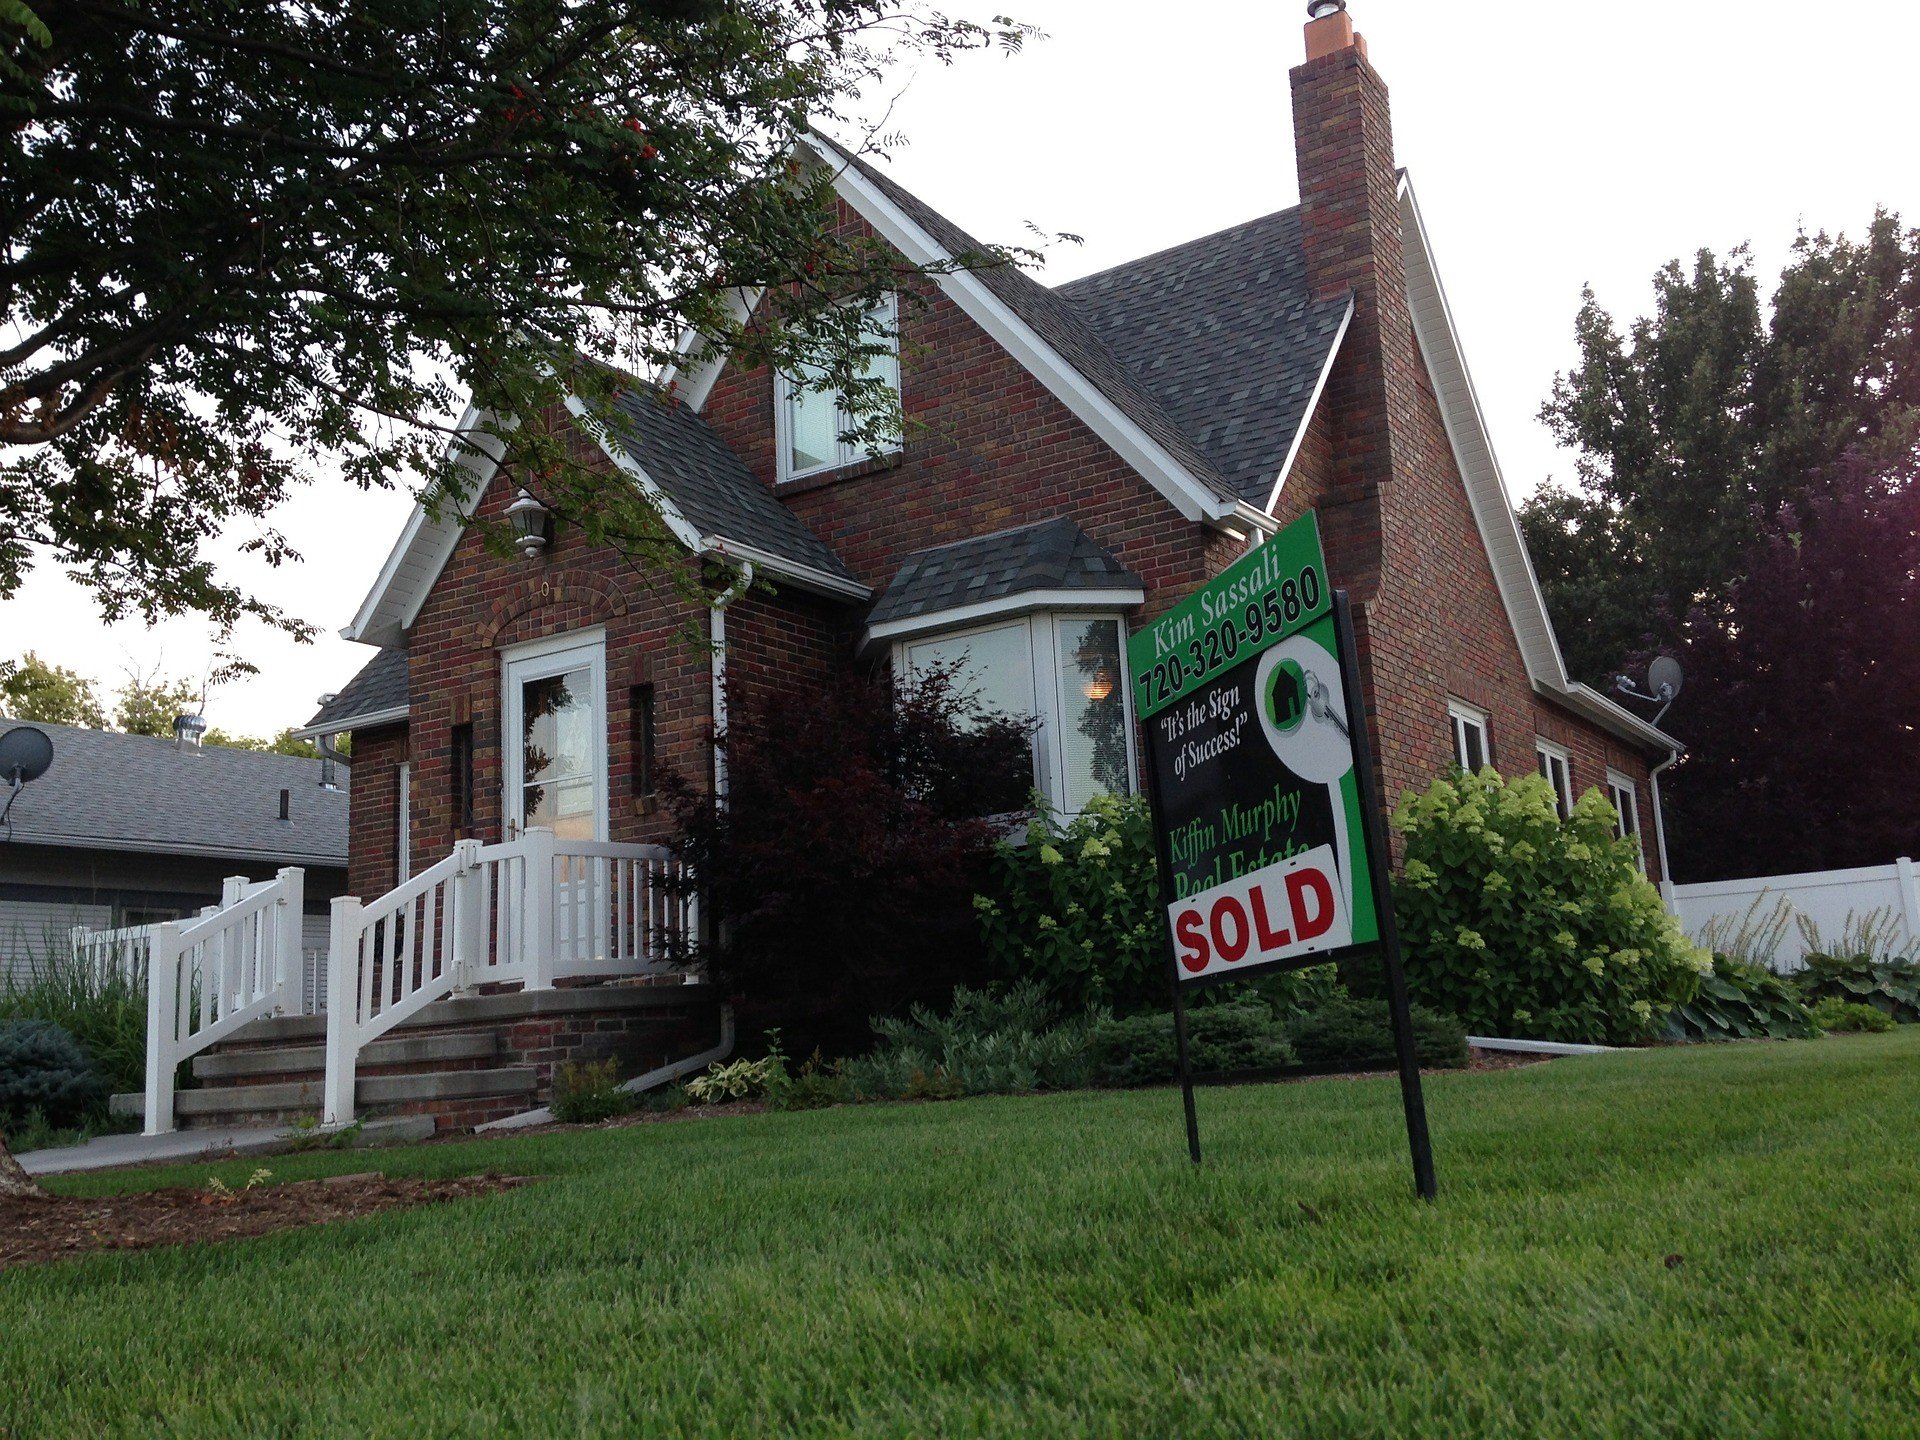 sell my house fast greendale wi - we buy houses greendale wi and we are cash home buyer